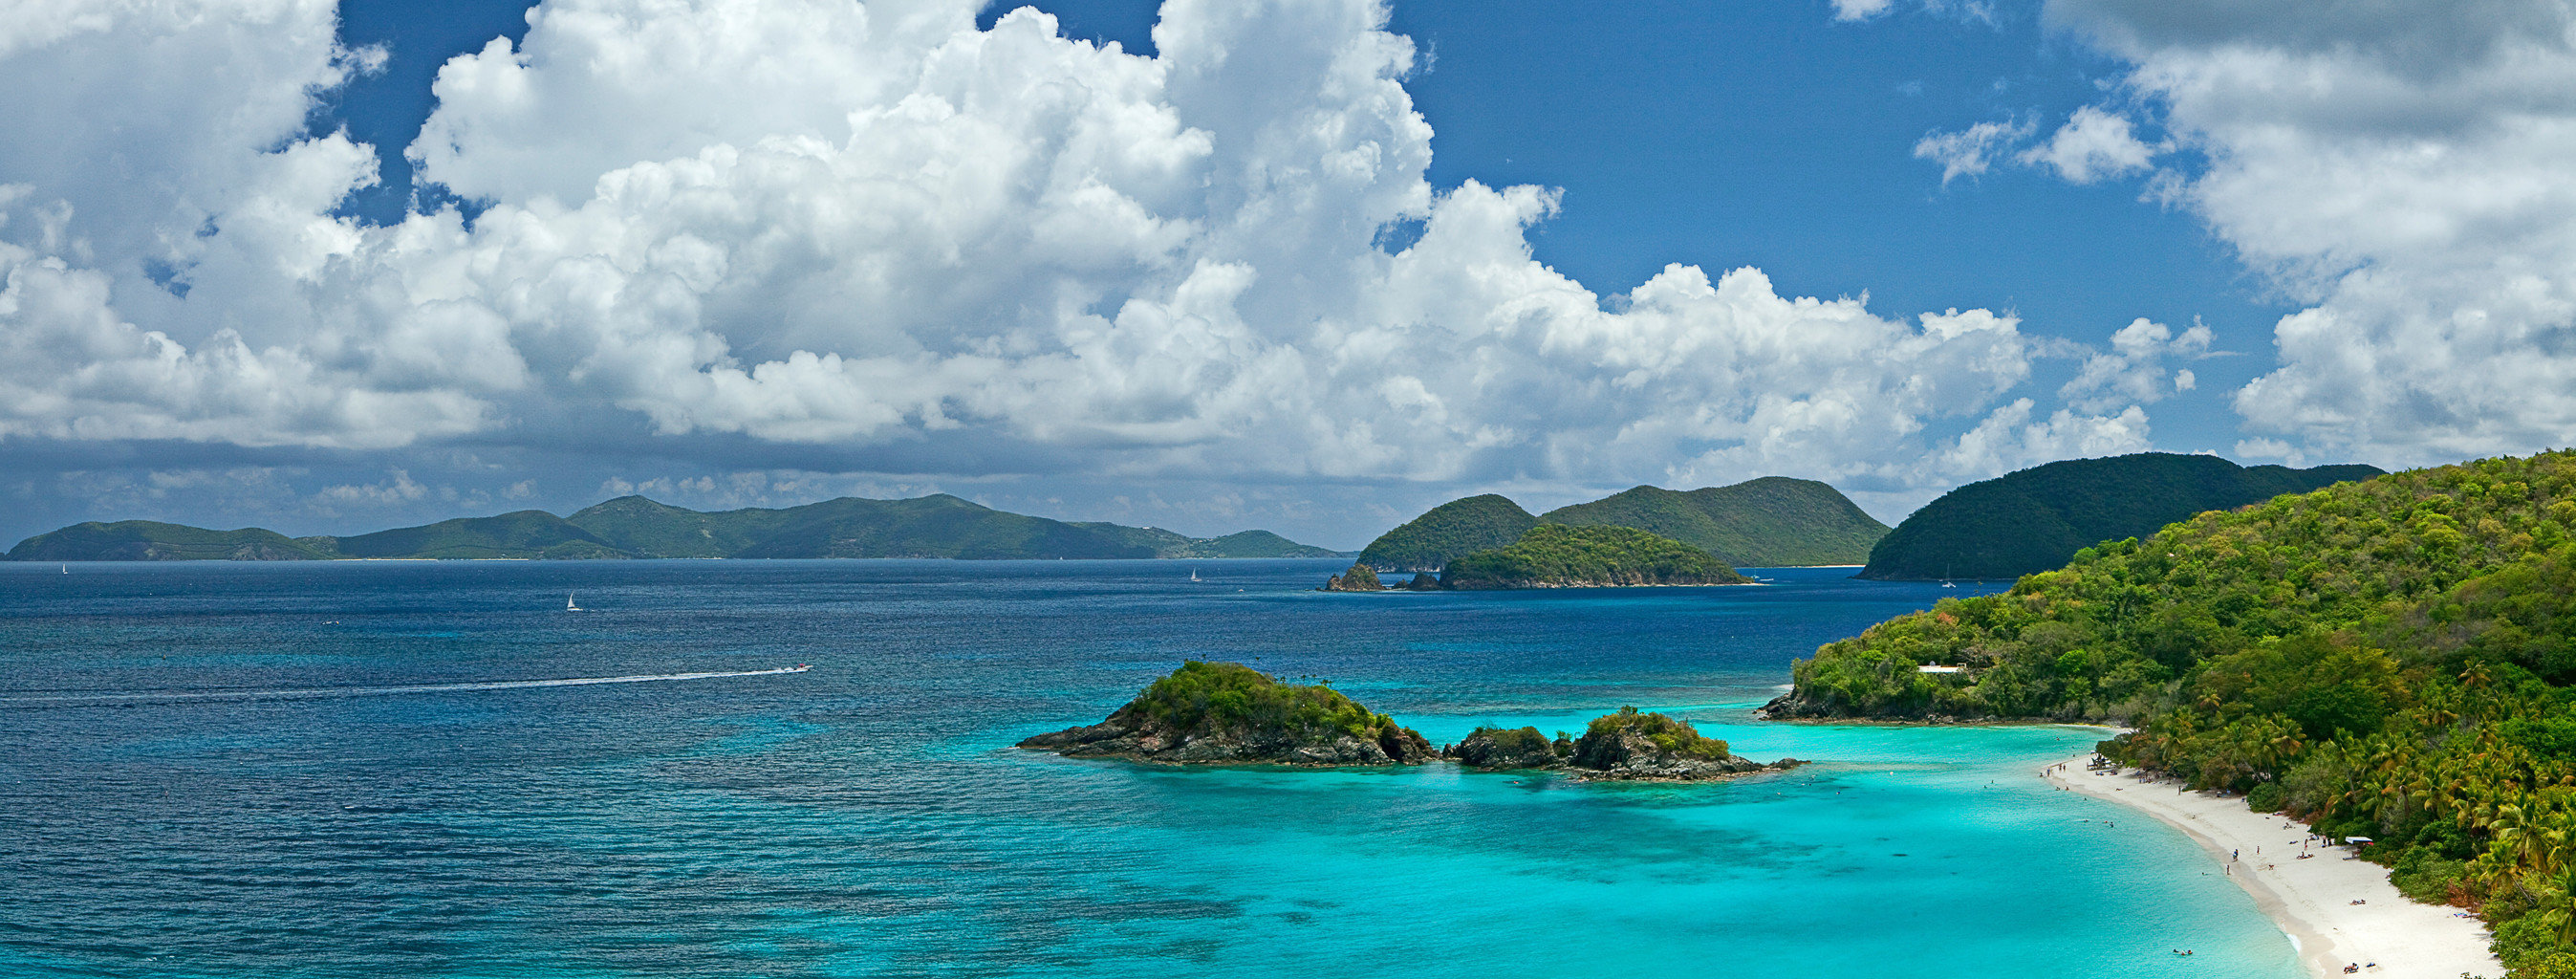 Can I Travel To St John Without A Passport